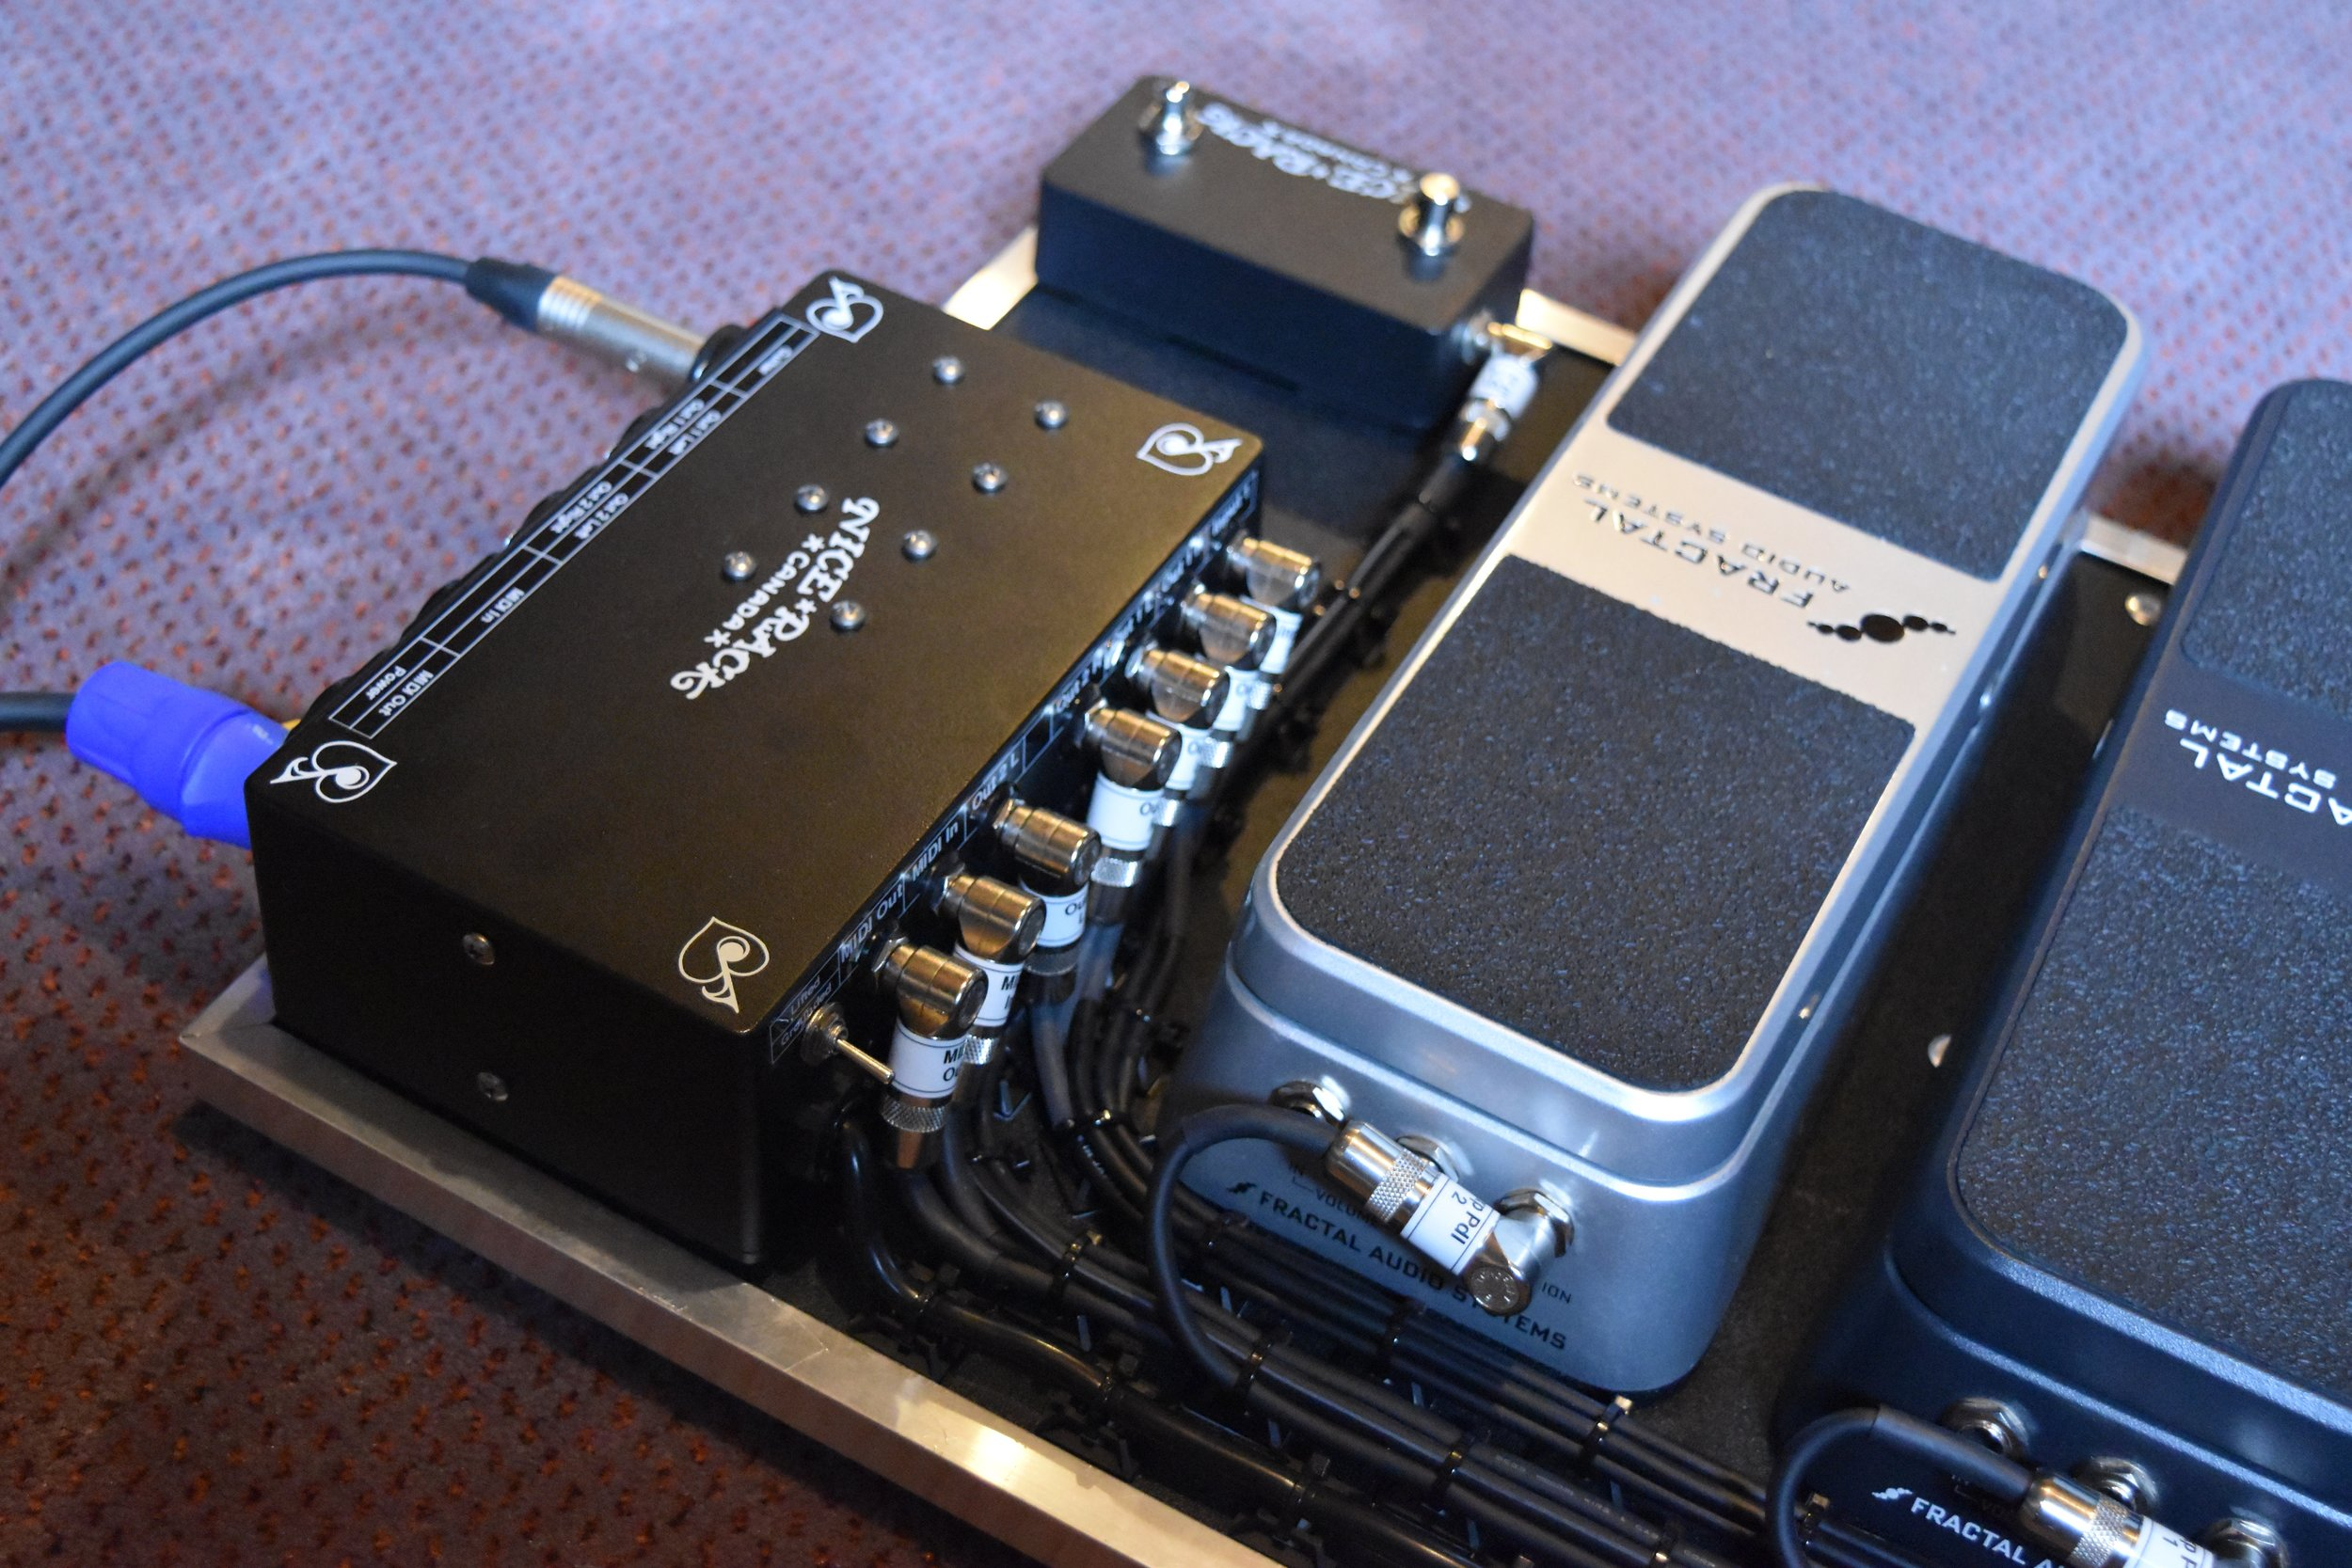 Mark Day Fractal Audio AX8 Pedalboard System 08.jpg